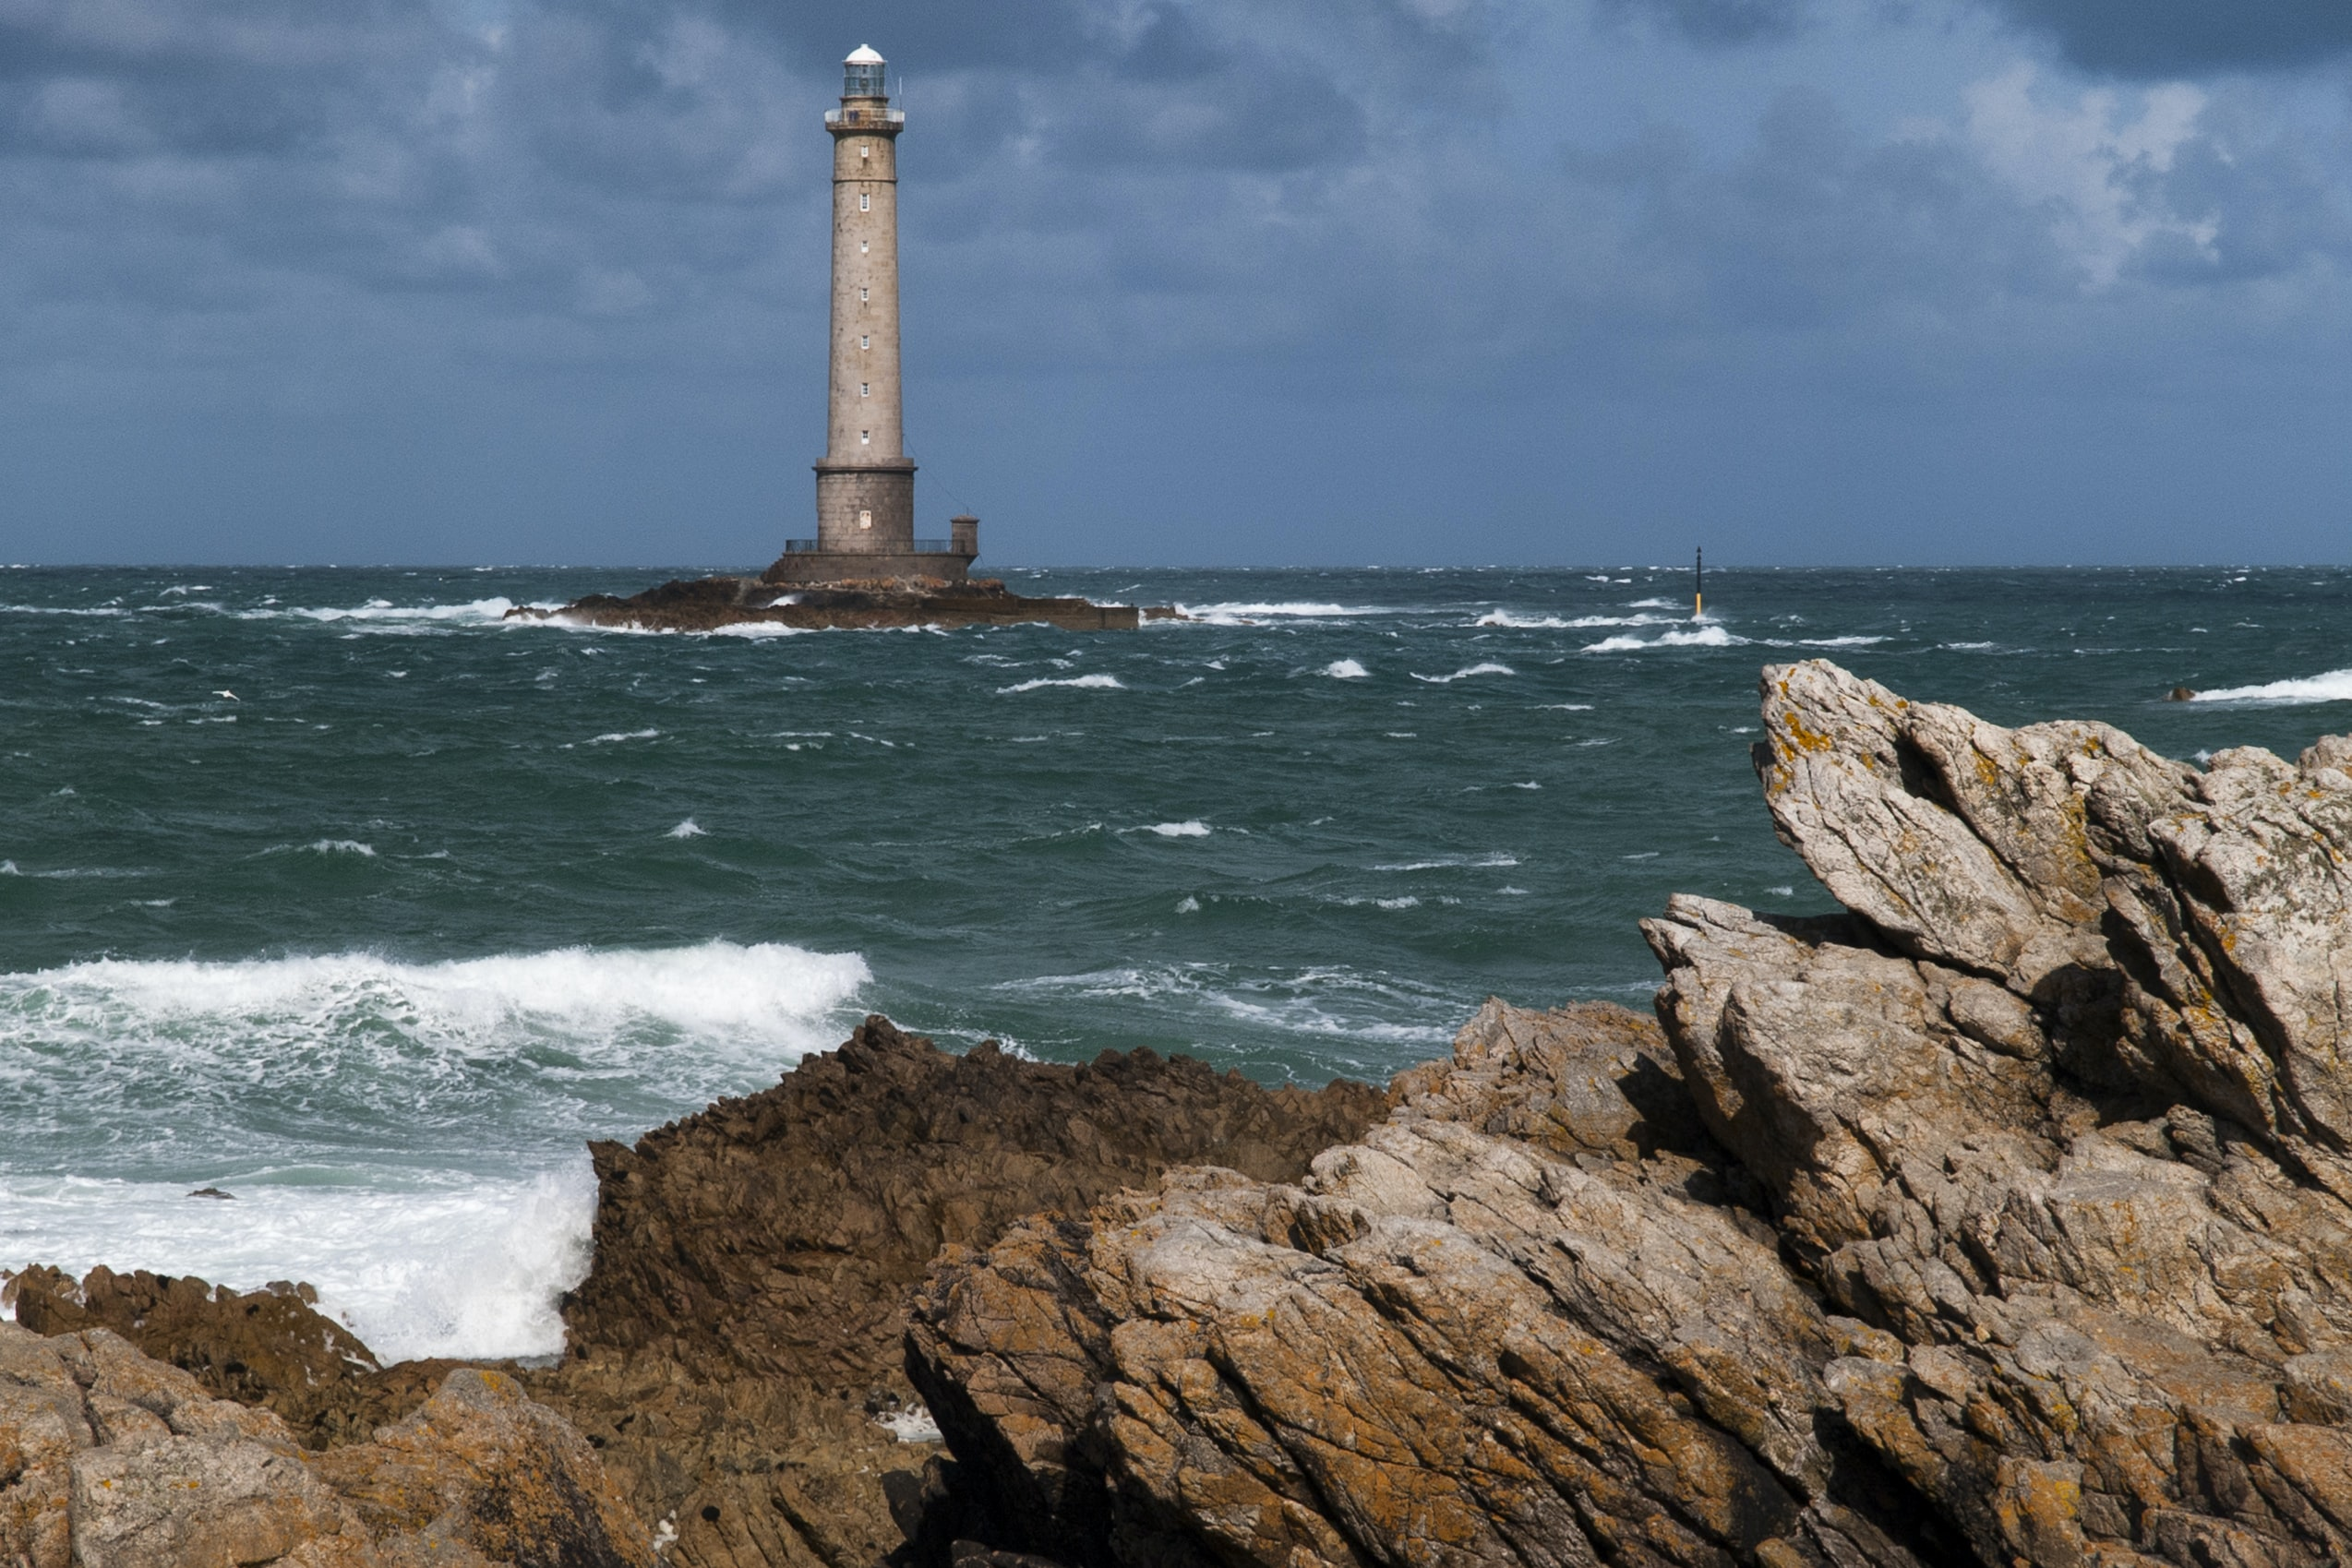 landscape photography of lighthouse near body of water